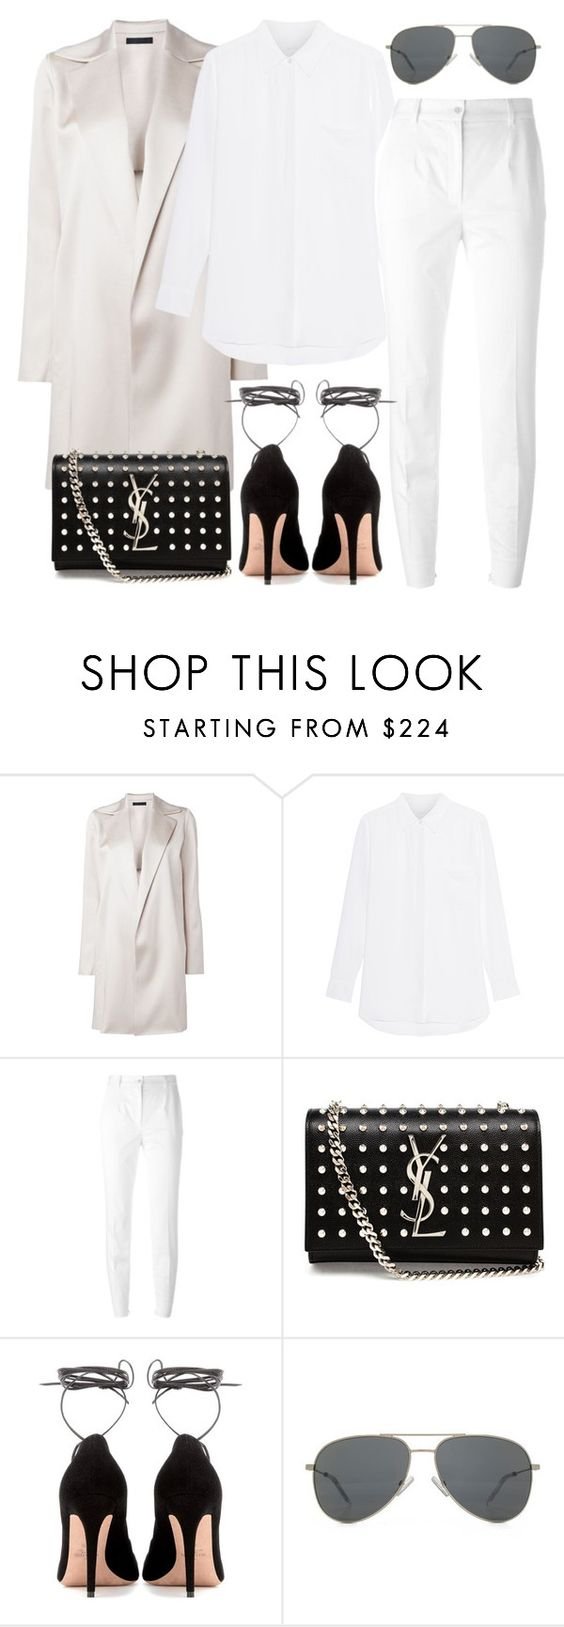 """Untitled #2344"" by briarachele on Polyvore featuring The Row, Dolce&Gabbana, Yves Saint Laurent and Valentino"